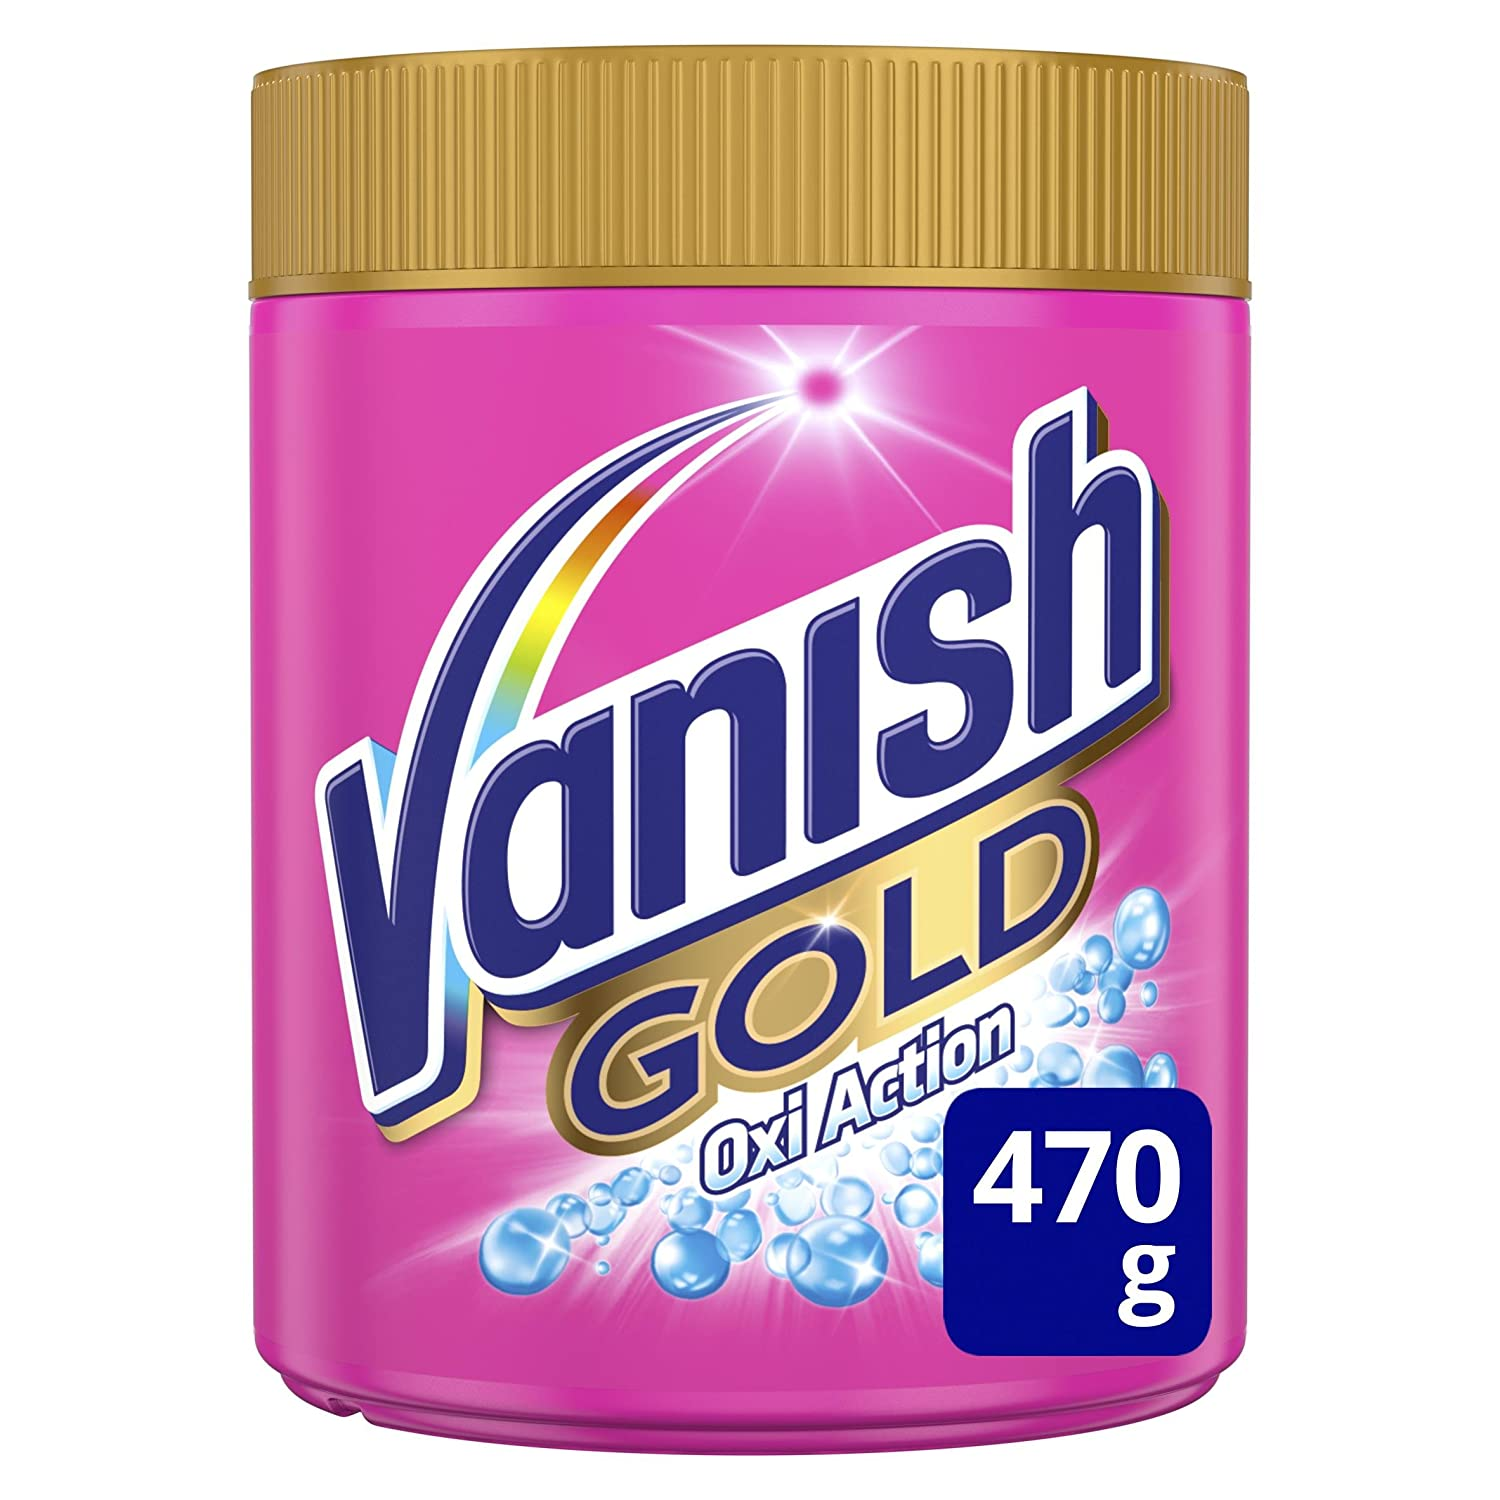 Vanish Gold Oxi Action, Quitamanchas Polvo, Color - 470 gr: Amazon.es: Salud y cuidado personal